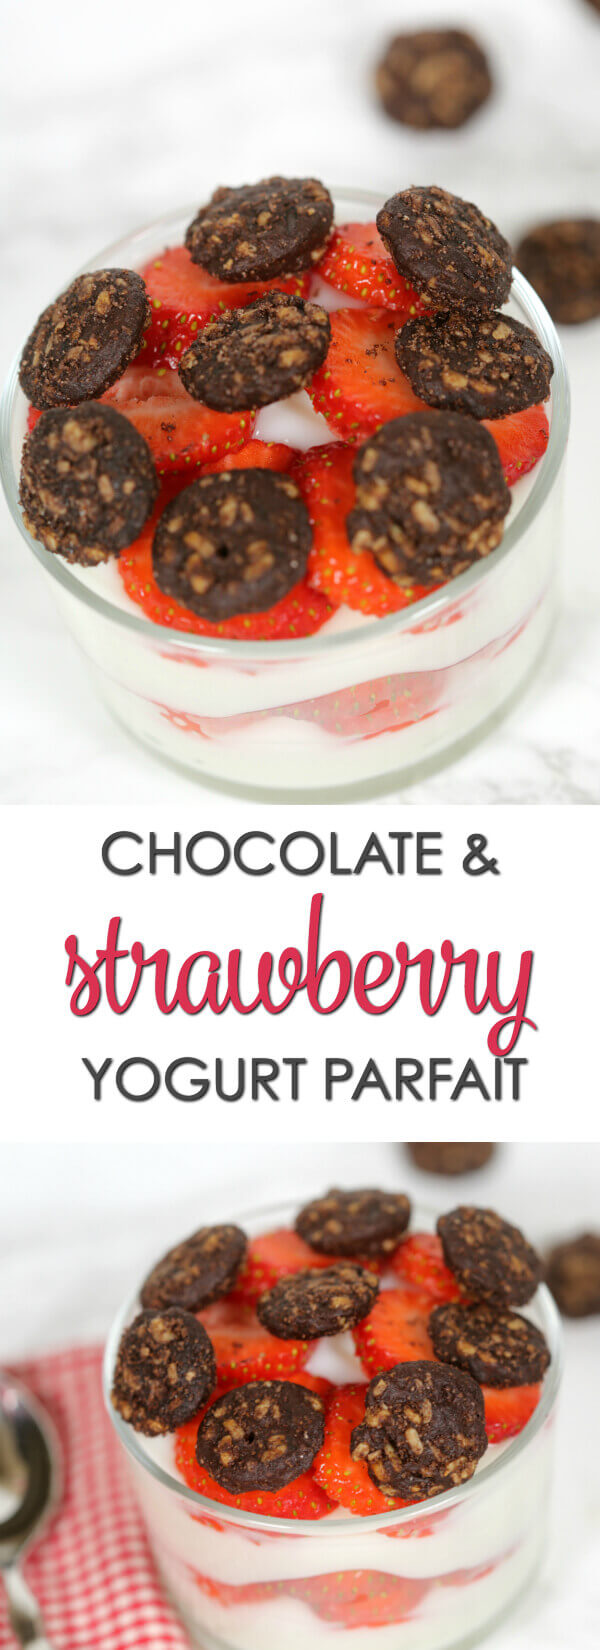 Chocolate Strawberry Yogurt Parfait - this easy recipe is layered with fresh strawberries and chocolate clusters for the perfect breakfast or snack